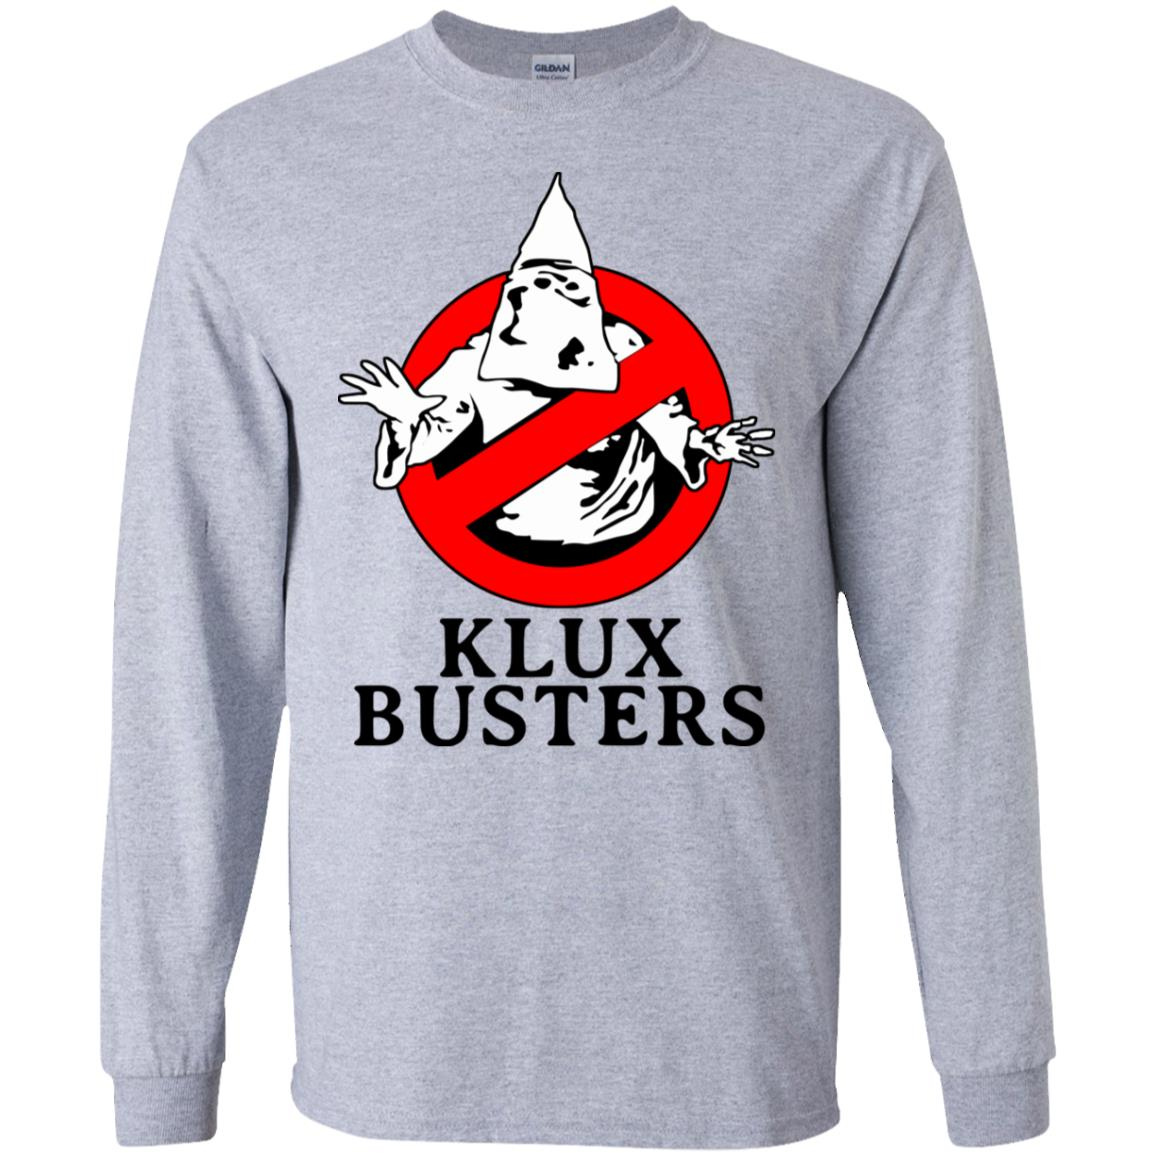 Klux Busters T Shirt Funny Birthday Cotton Tee Vintage Gift For Men Women